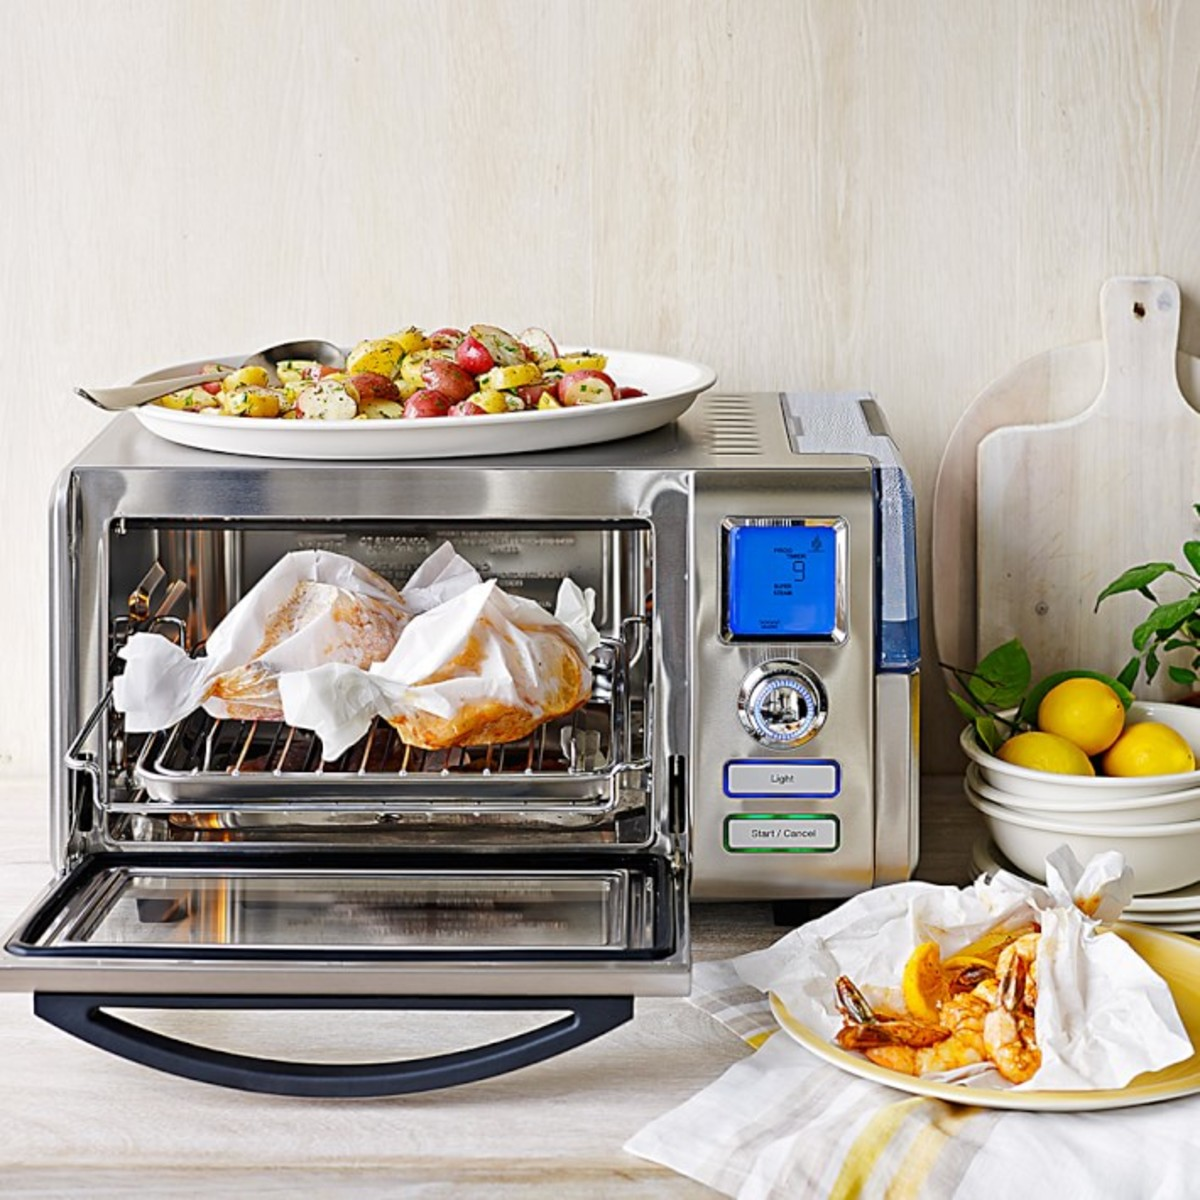 cuisinart-combo-steam-and-convection-oven-o